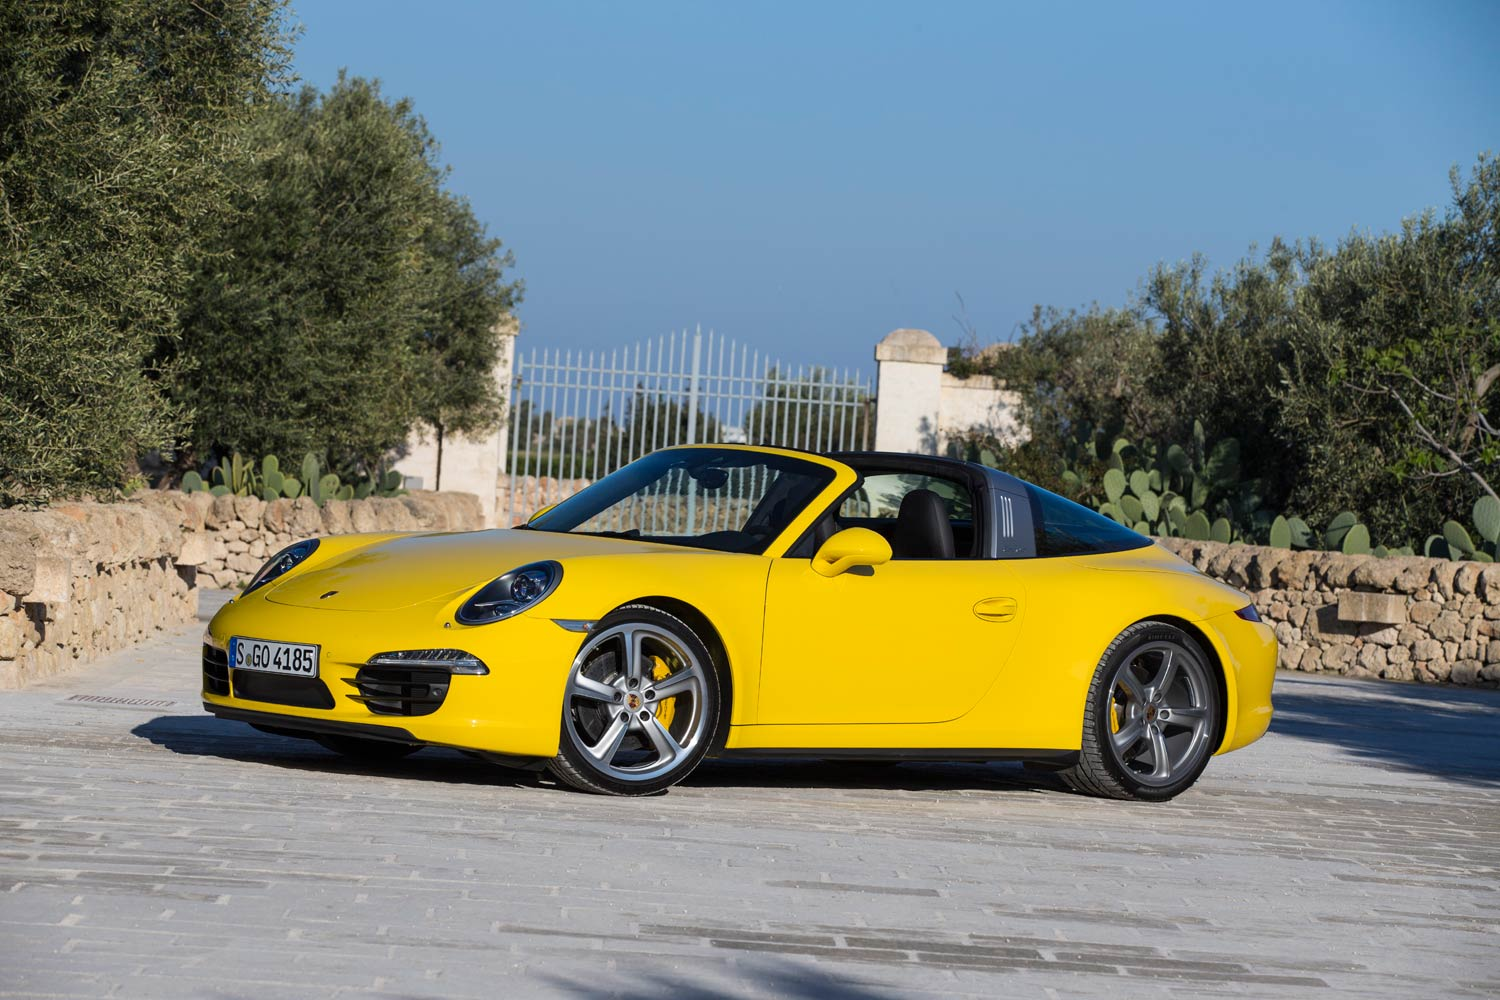 Luxurious Magazine Road Tests The Porsche 911 Targa 4